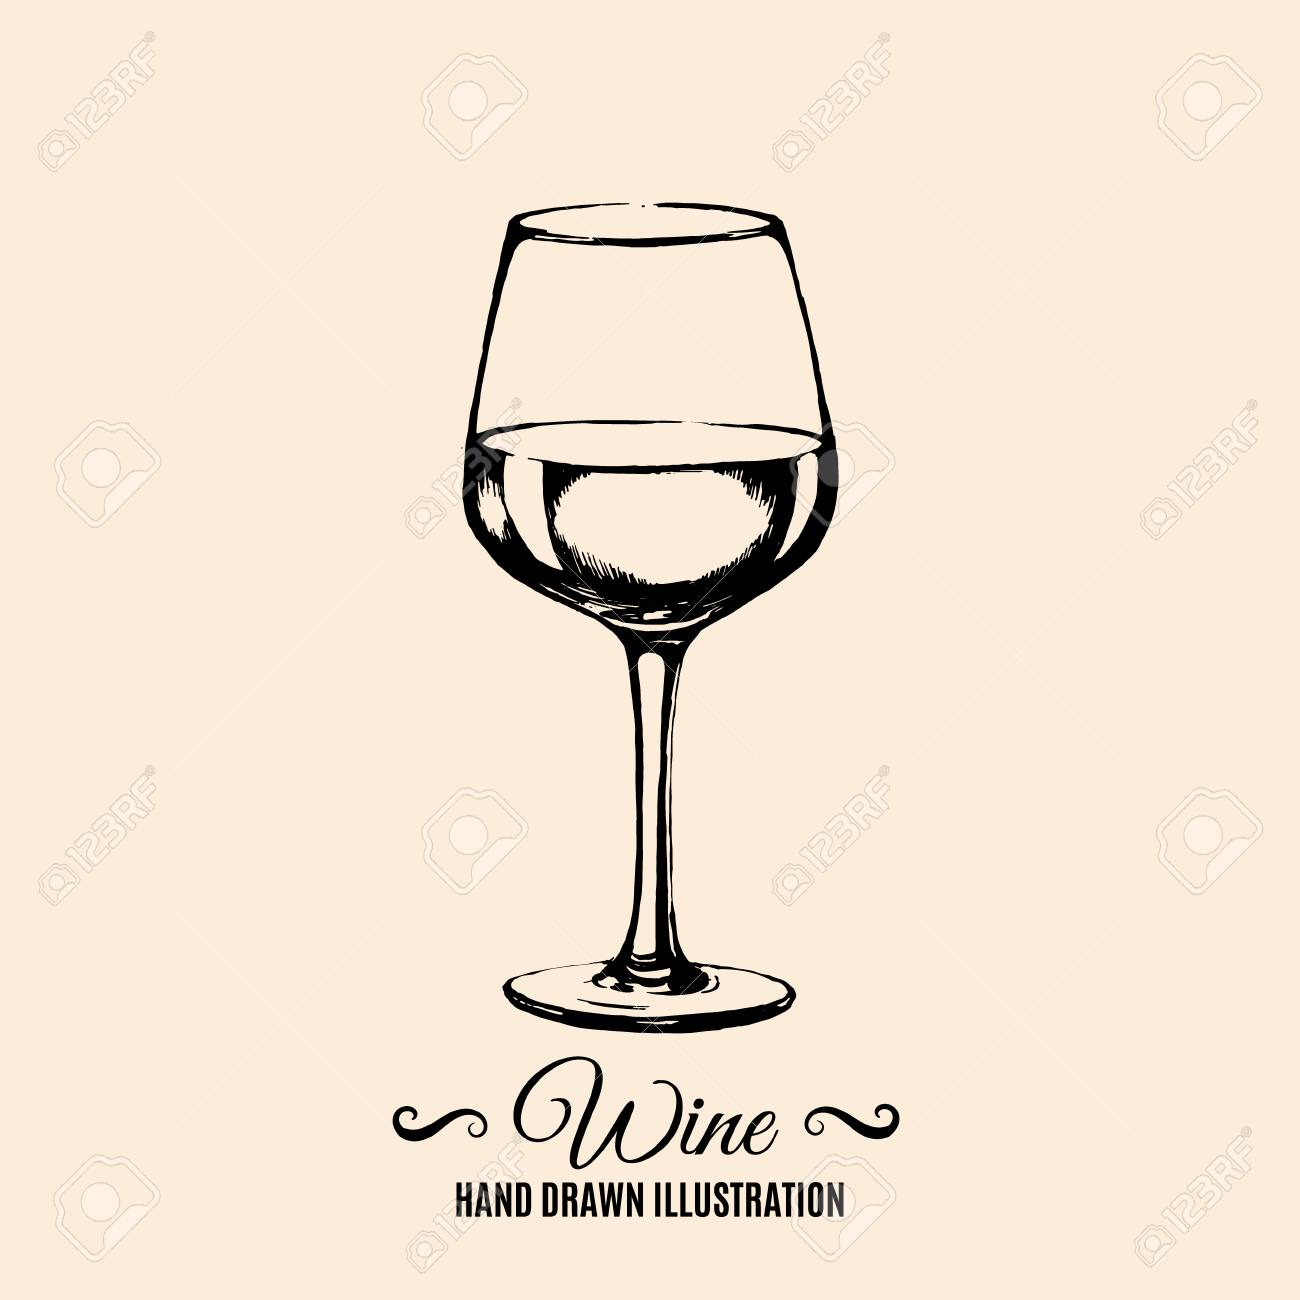 Vector Hand Drawn Illustration Of Wine Glass Template For Card Royalty Free Cliparts Vectors And Stock Illustration Image 97898720